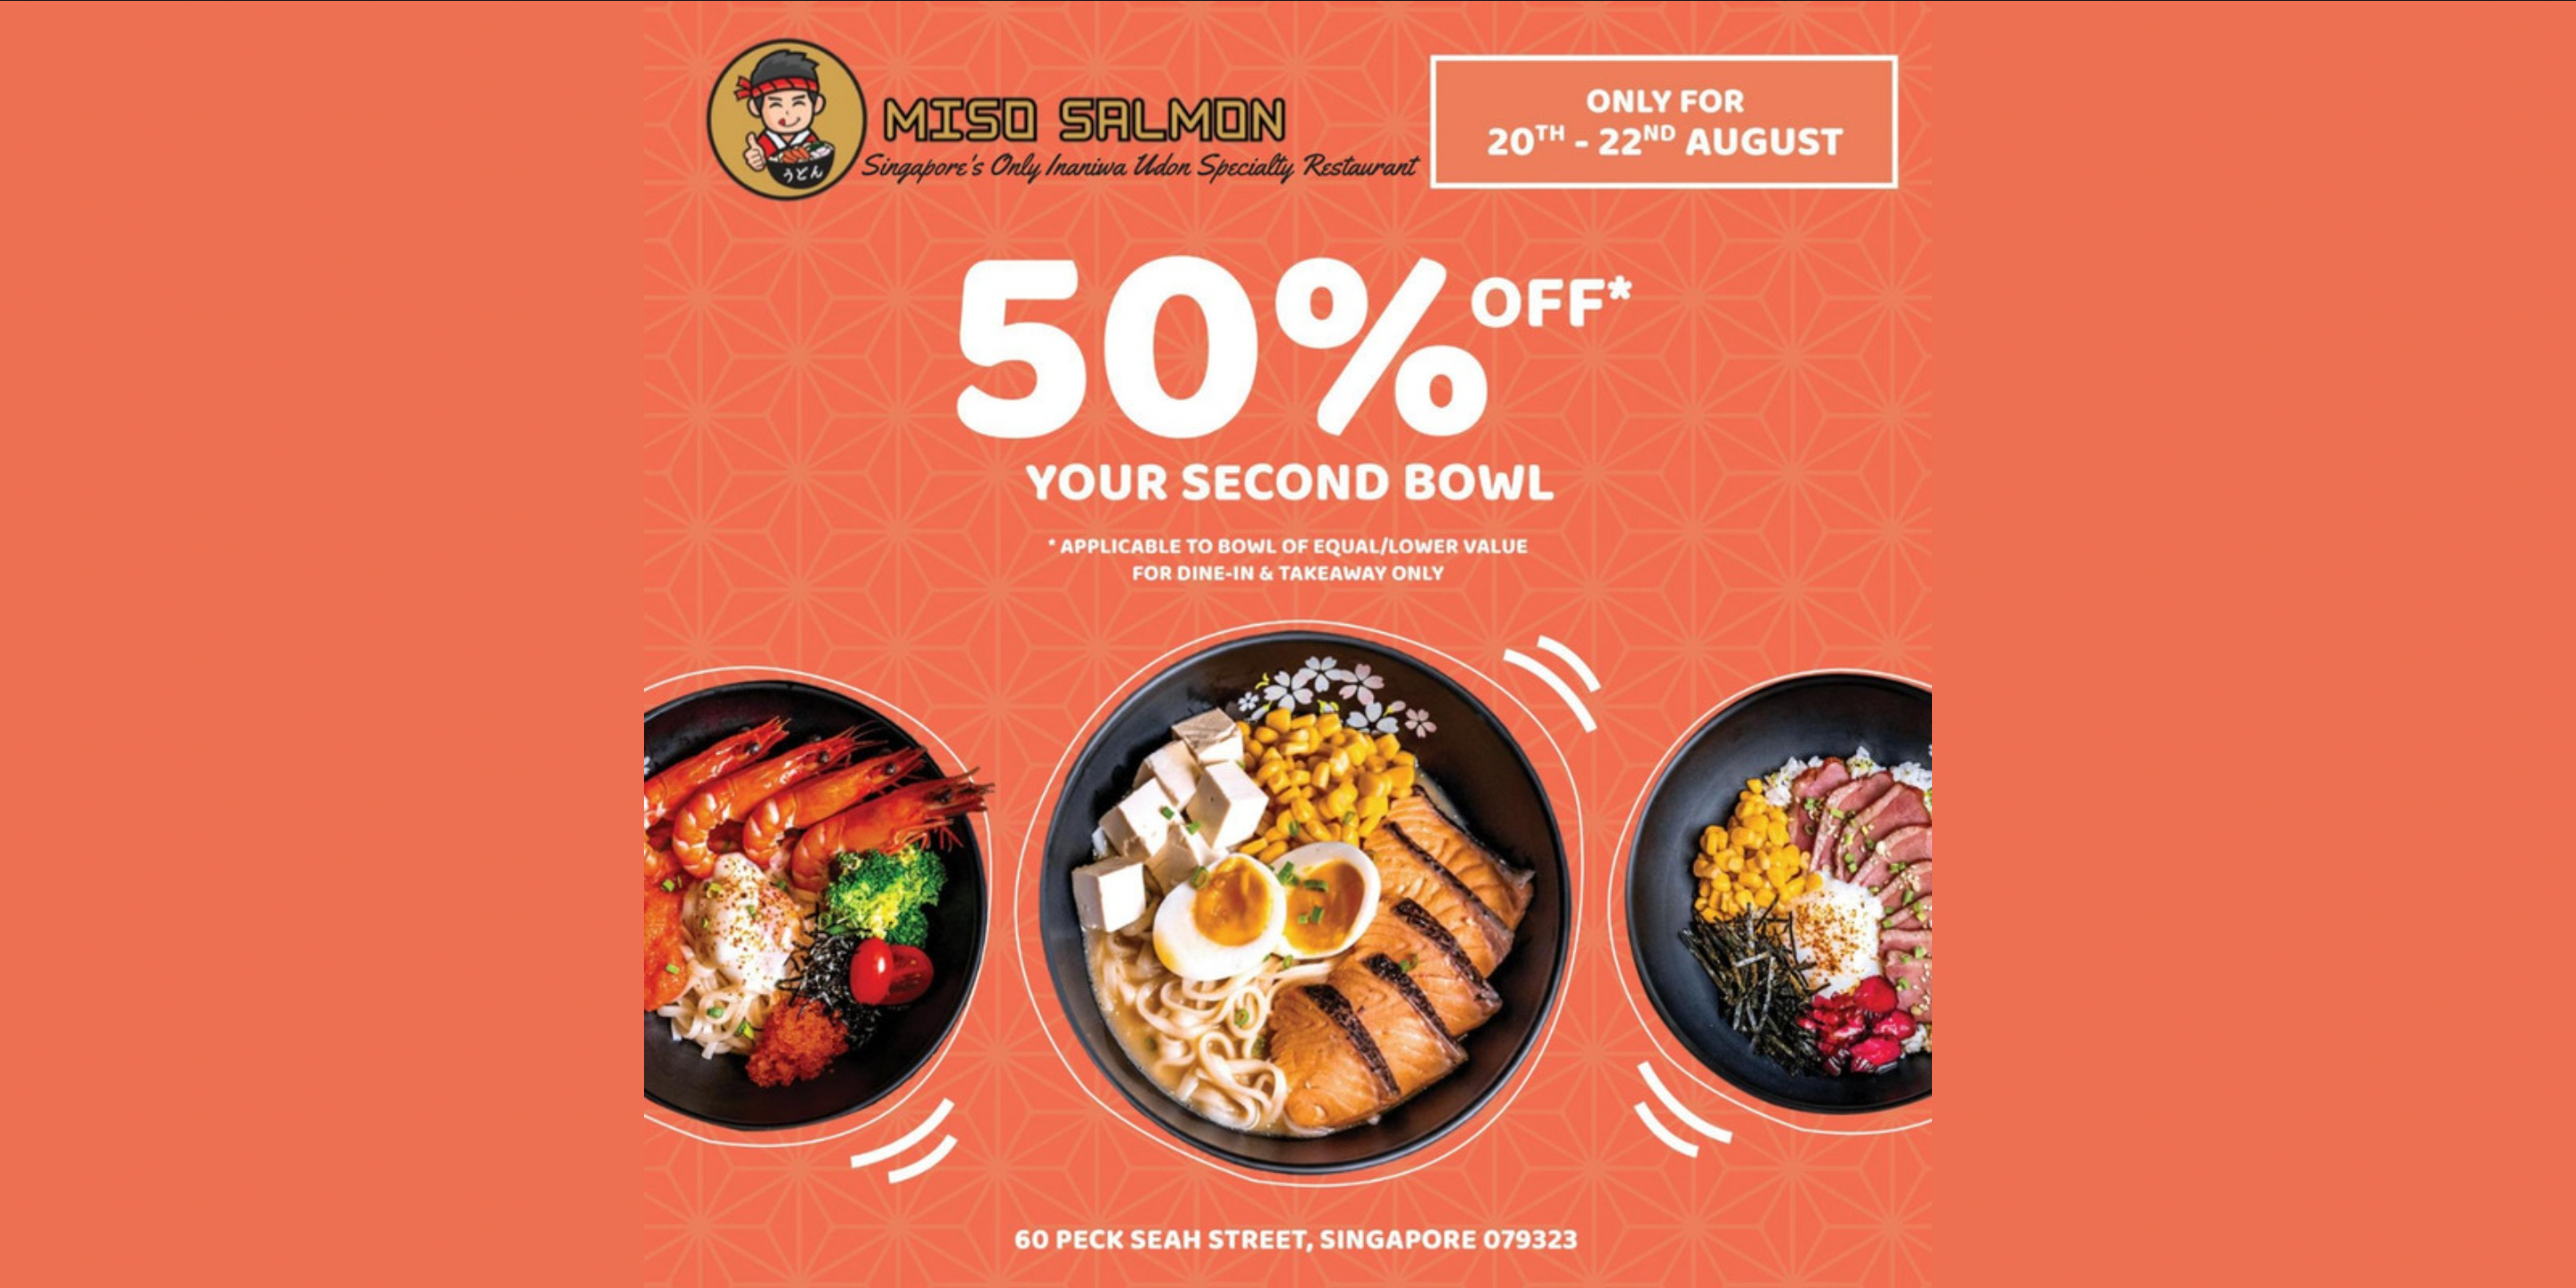 Enjoy 50% OFF your second bowl at Miso Salmon